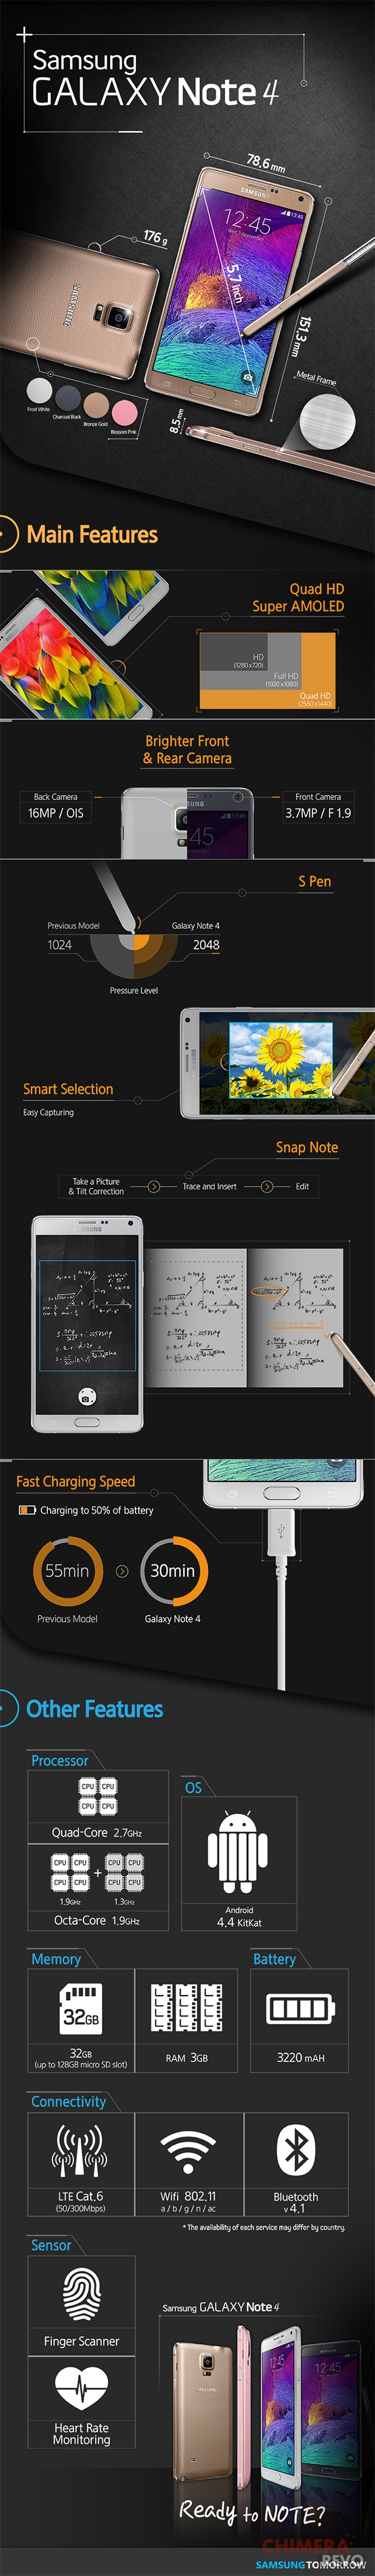 Infografica Samsung Galaxy Note 4